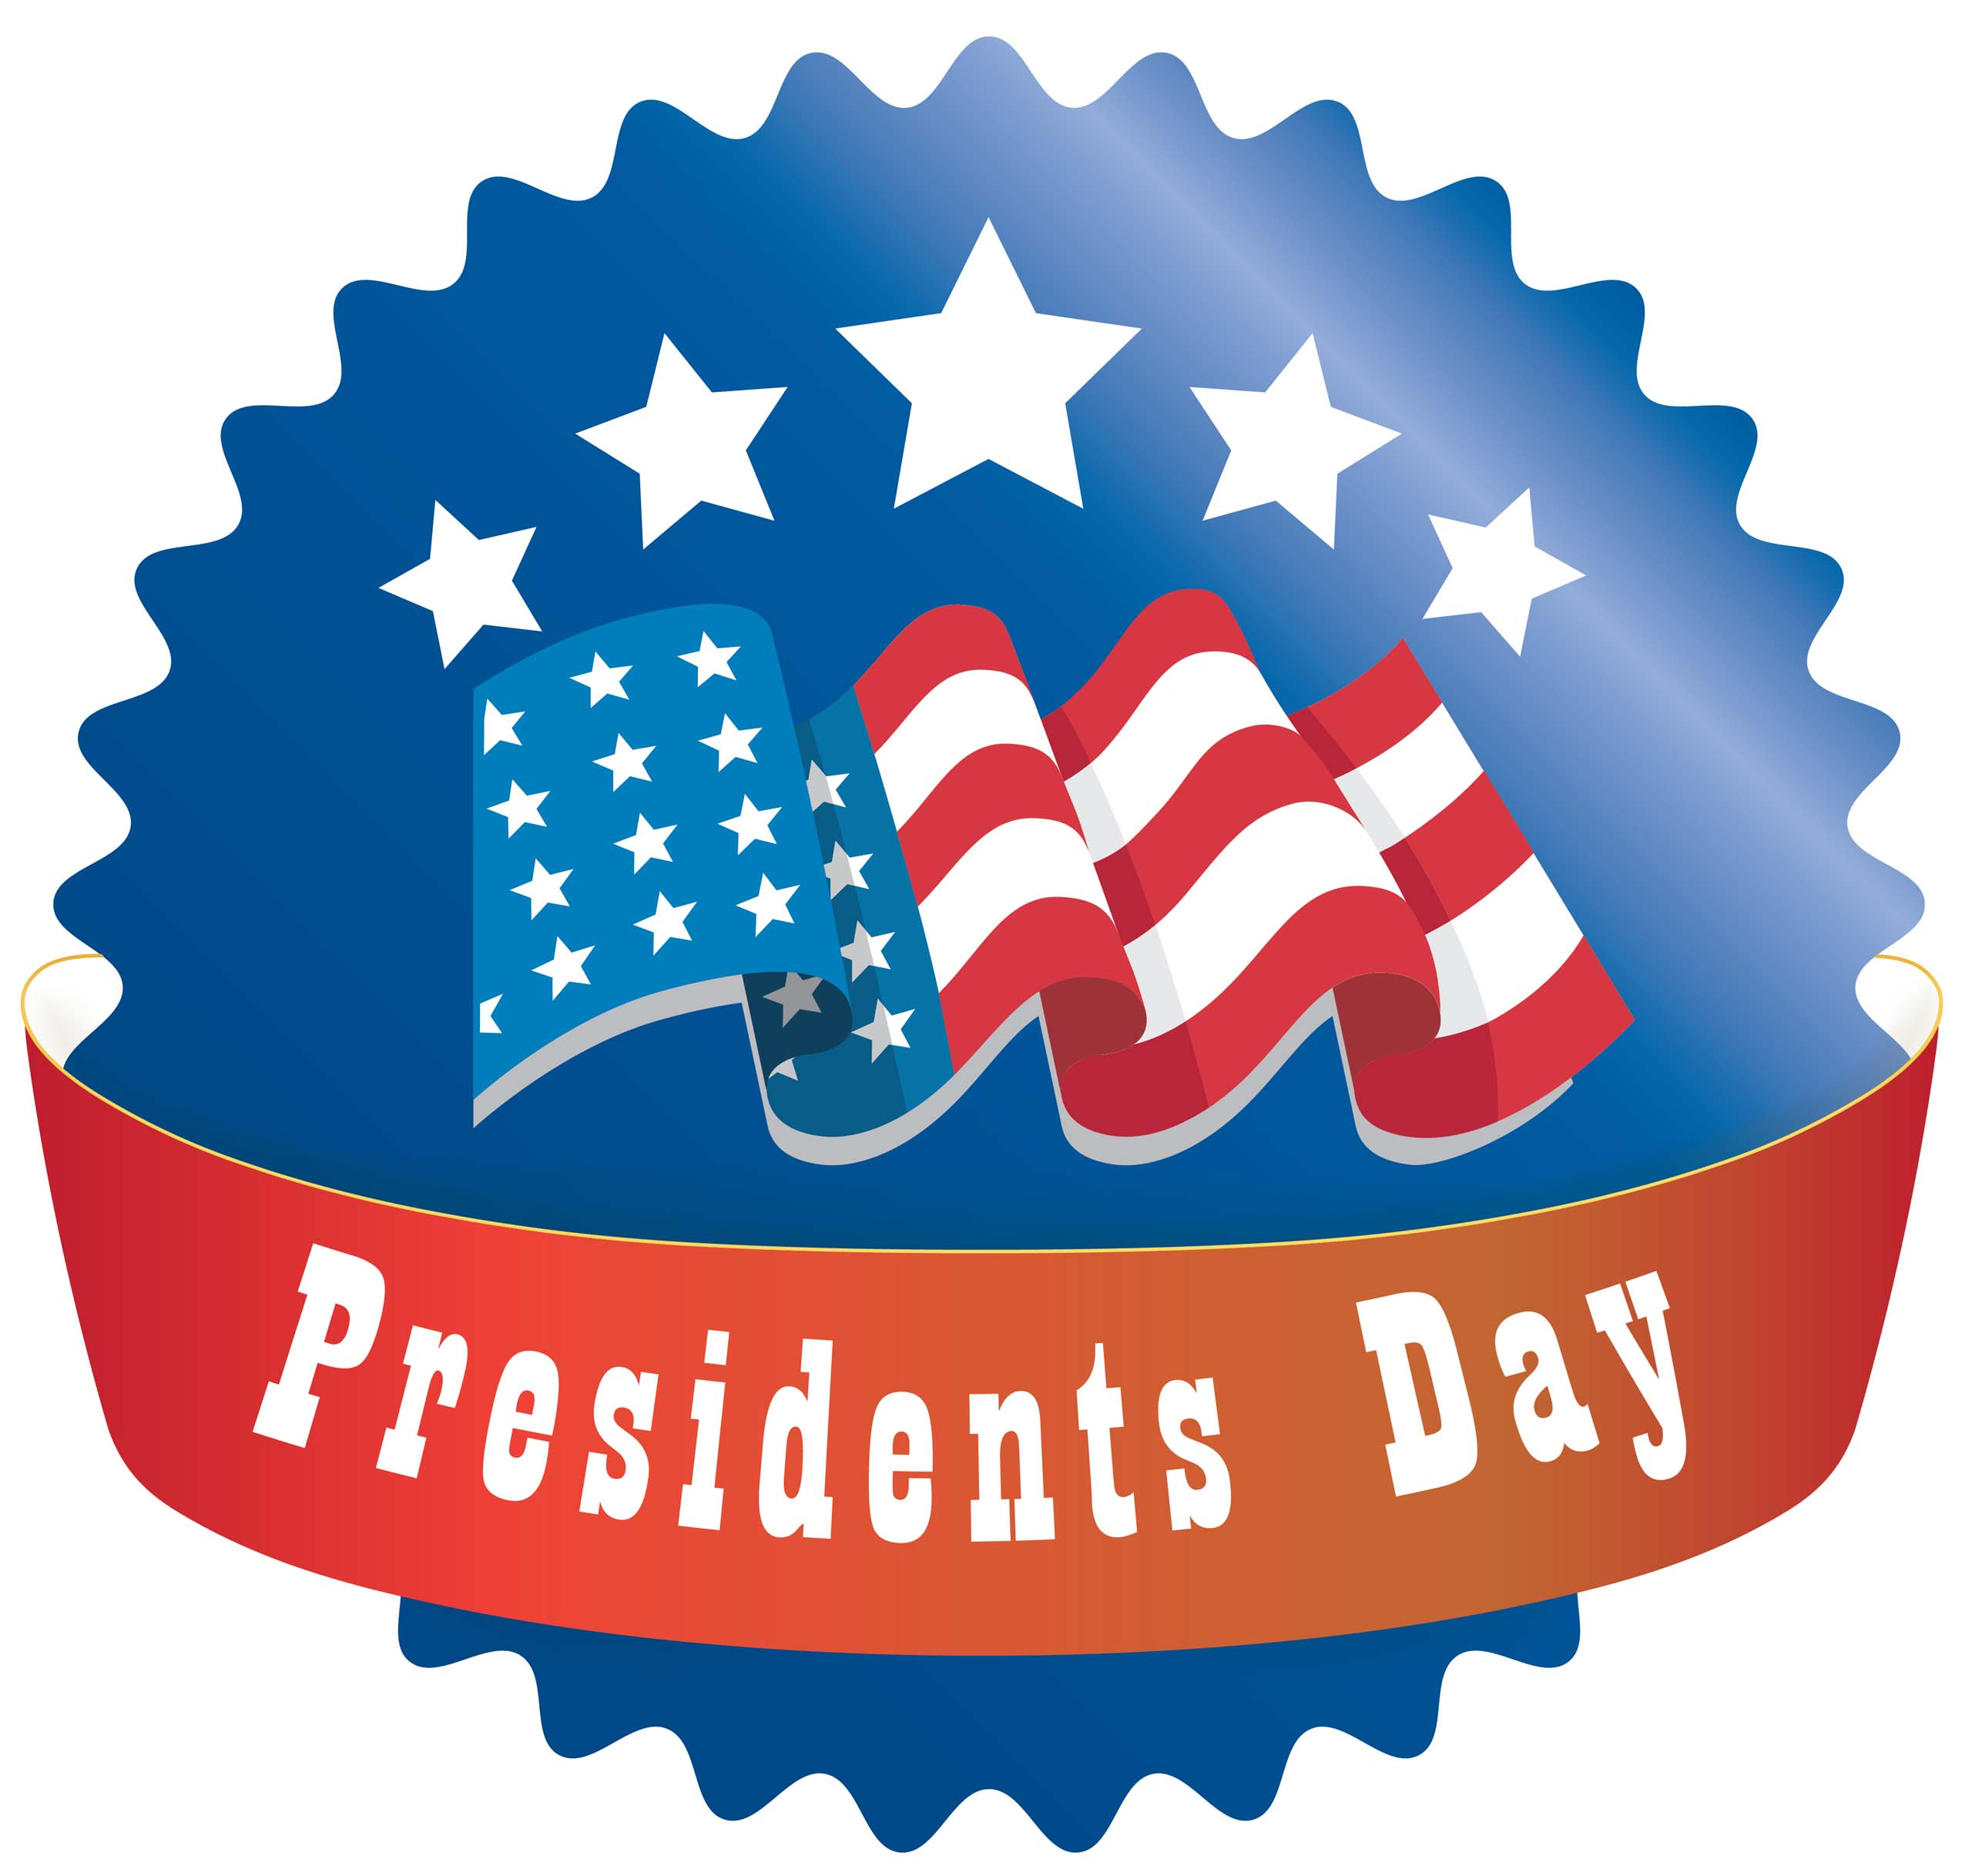 download Presidents Day Wallpapers on 2015 in HD [2560x2436 2560x2436